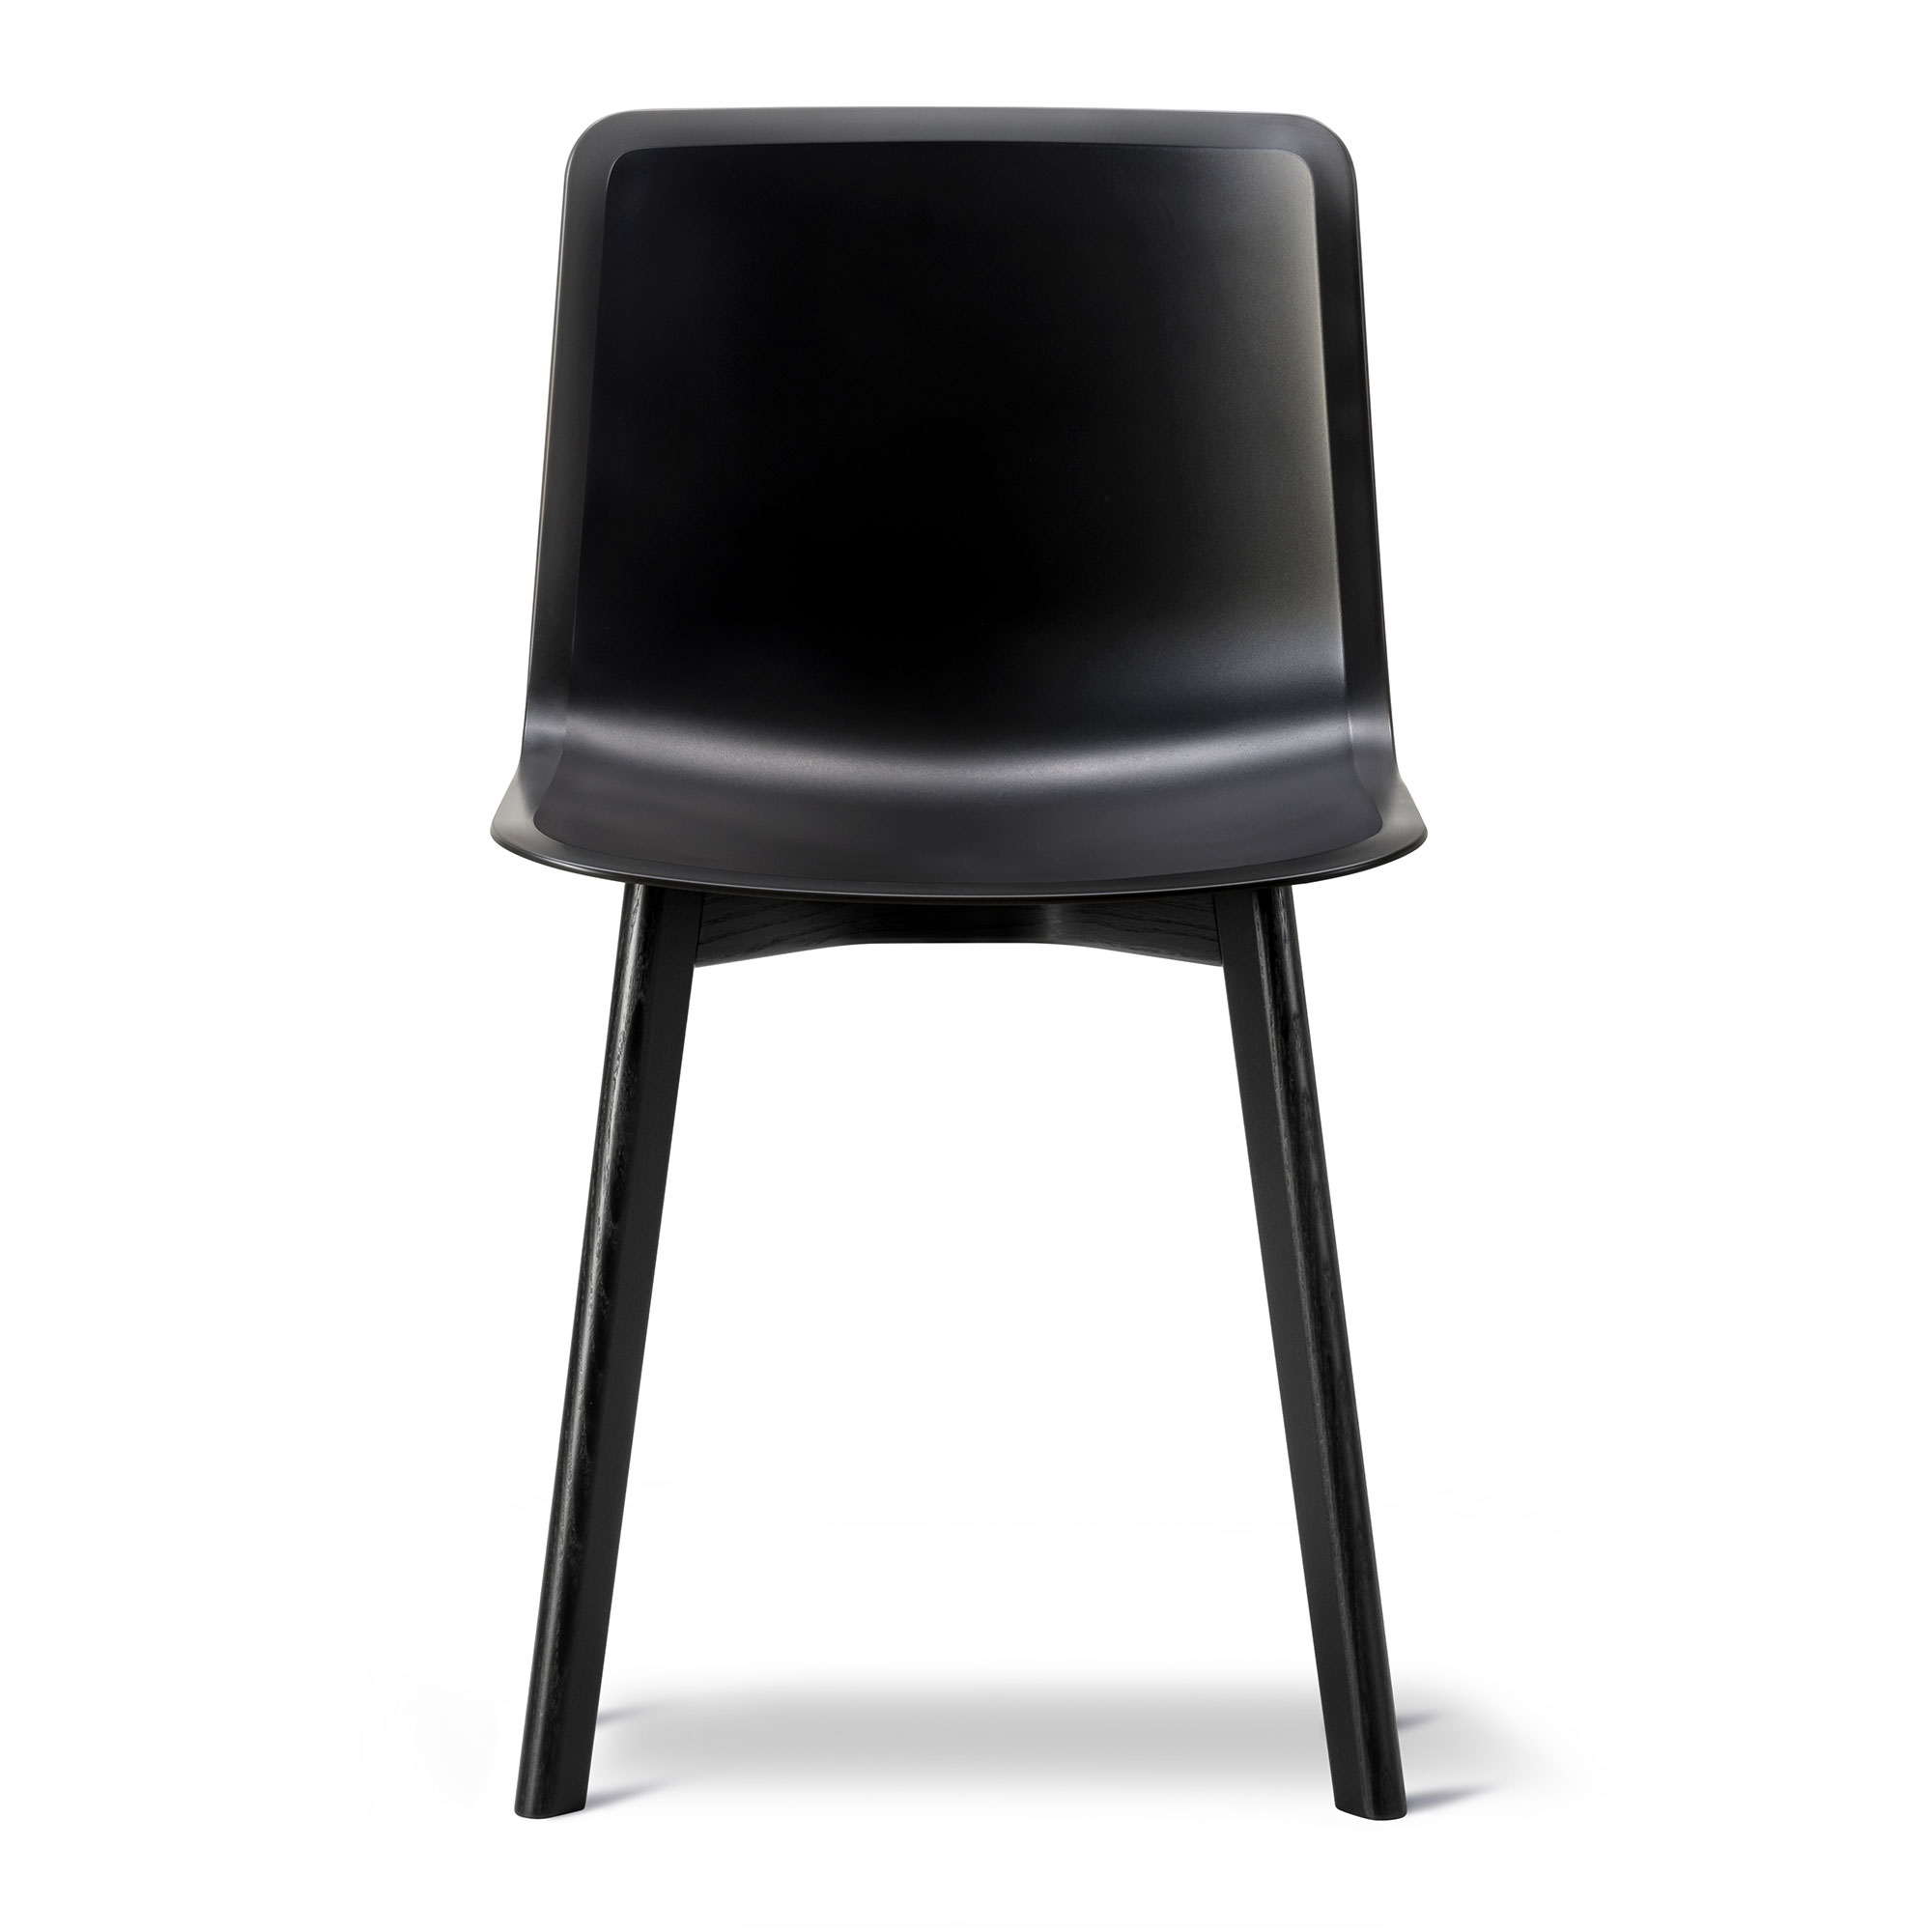 Pato 4225 Chair Svart Svartlackerad Ek